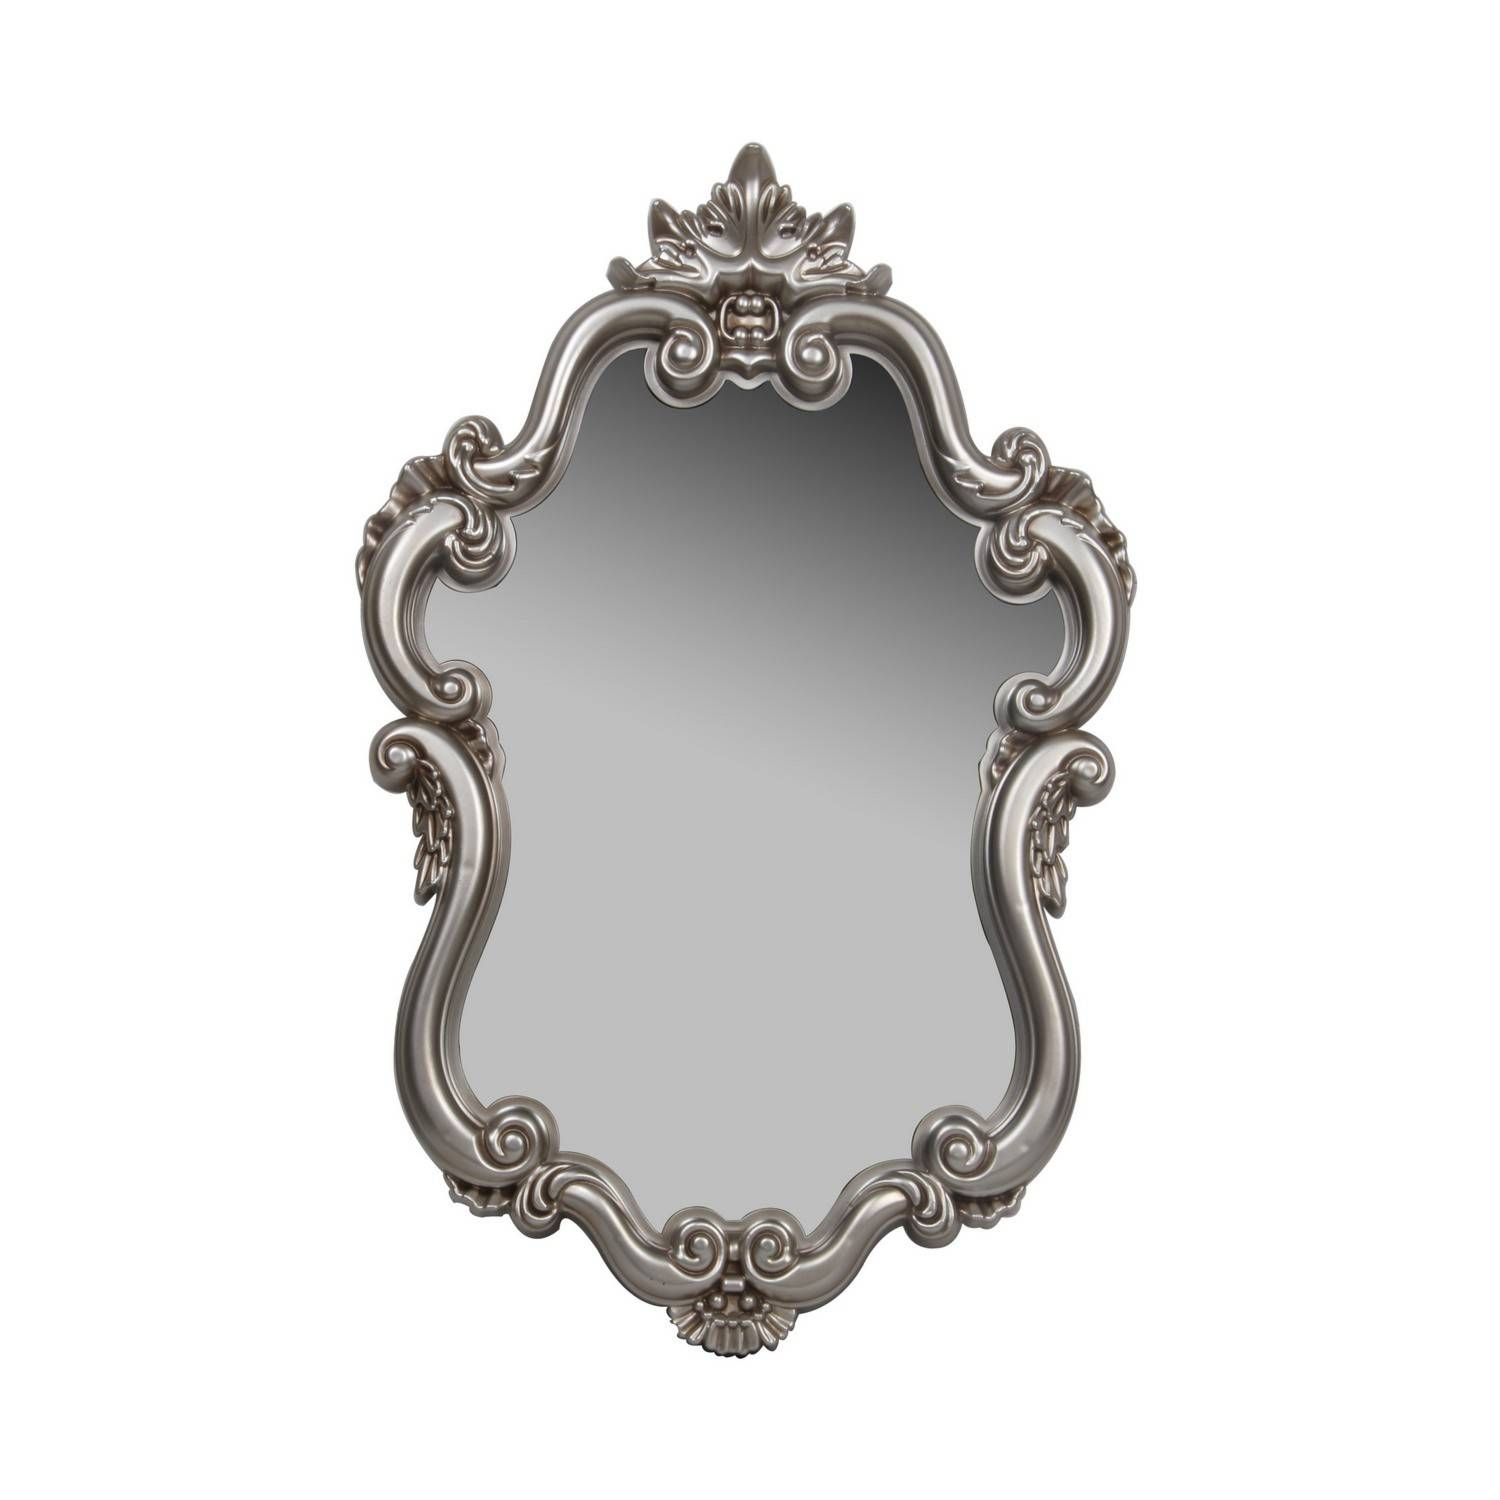 Large Oval Baroque Mirror Wall Acedf – Surripui With Baroque Style Mirrors (View 17 of 25)